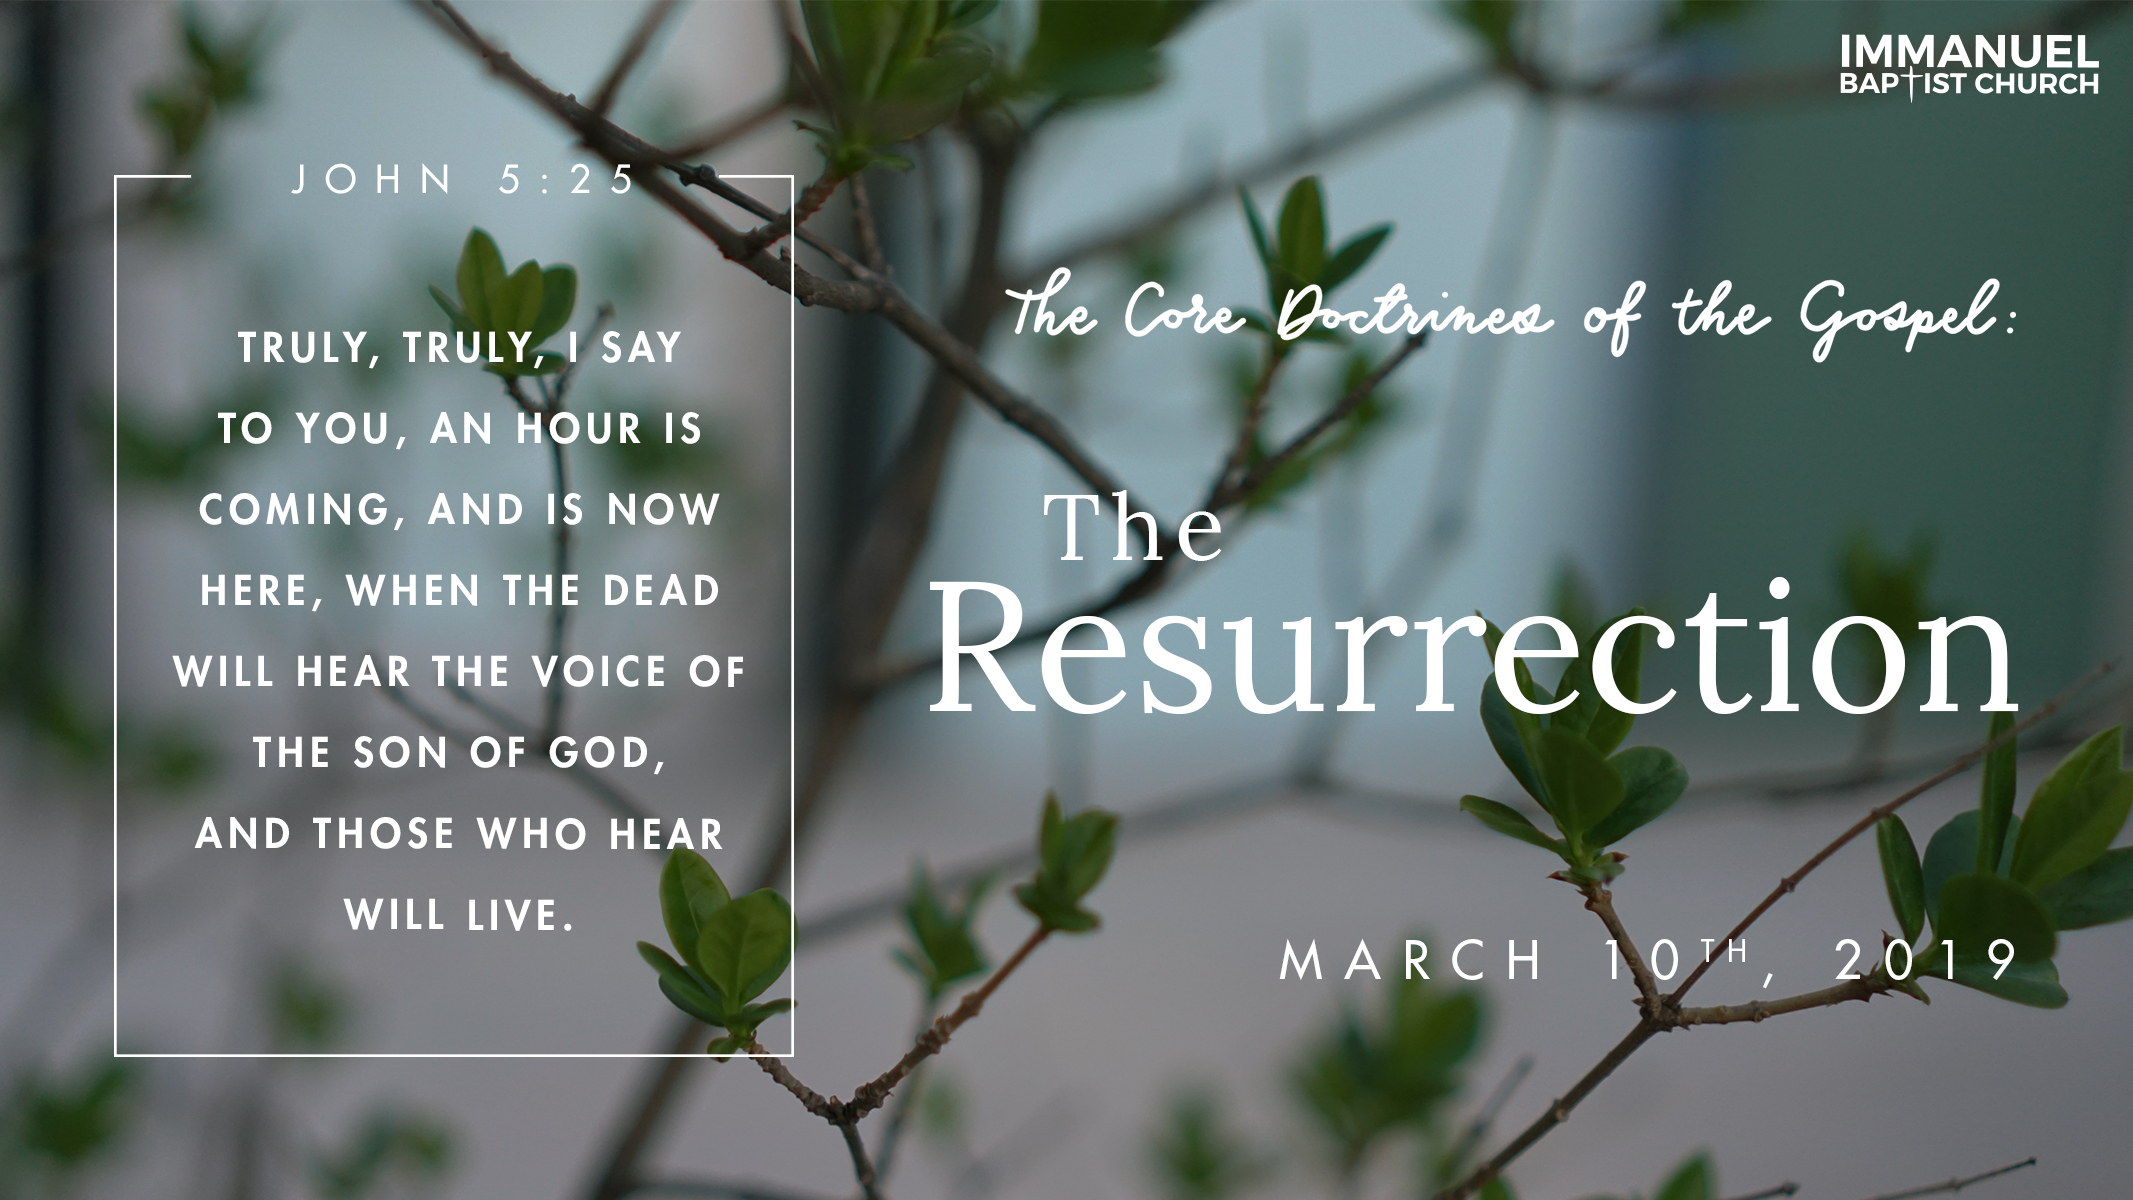 The Core Doctrines of the Gospel (Part 5): The Resurrection